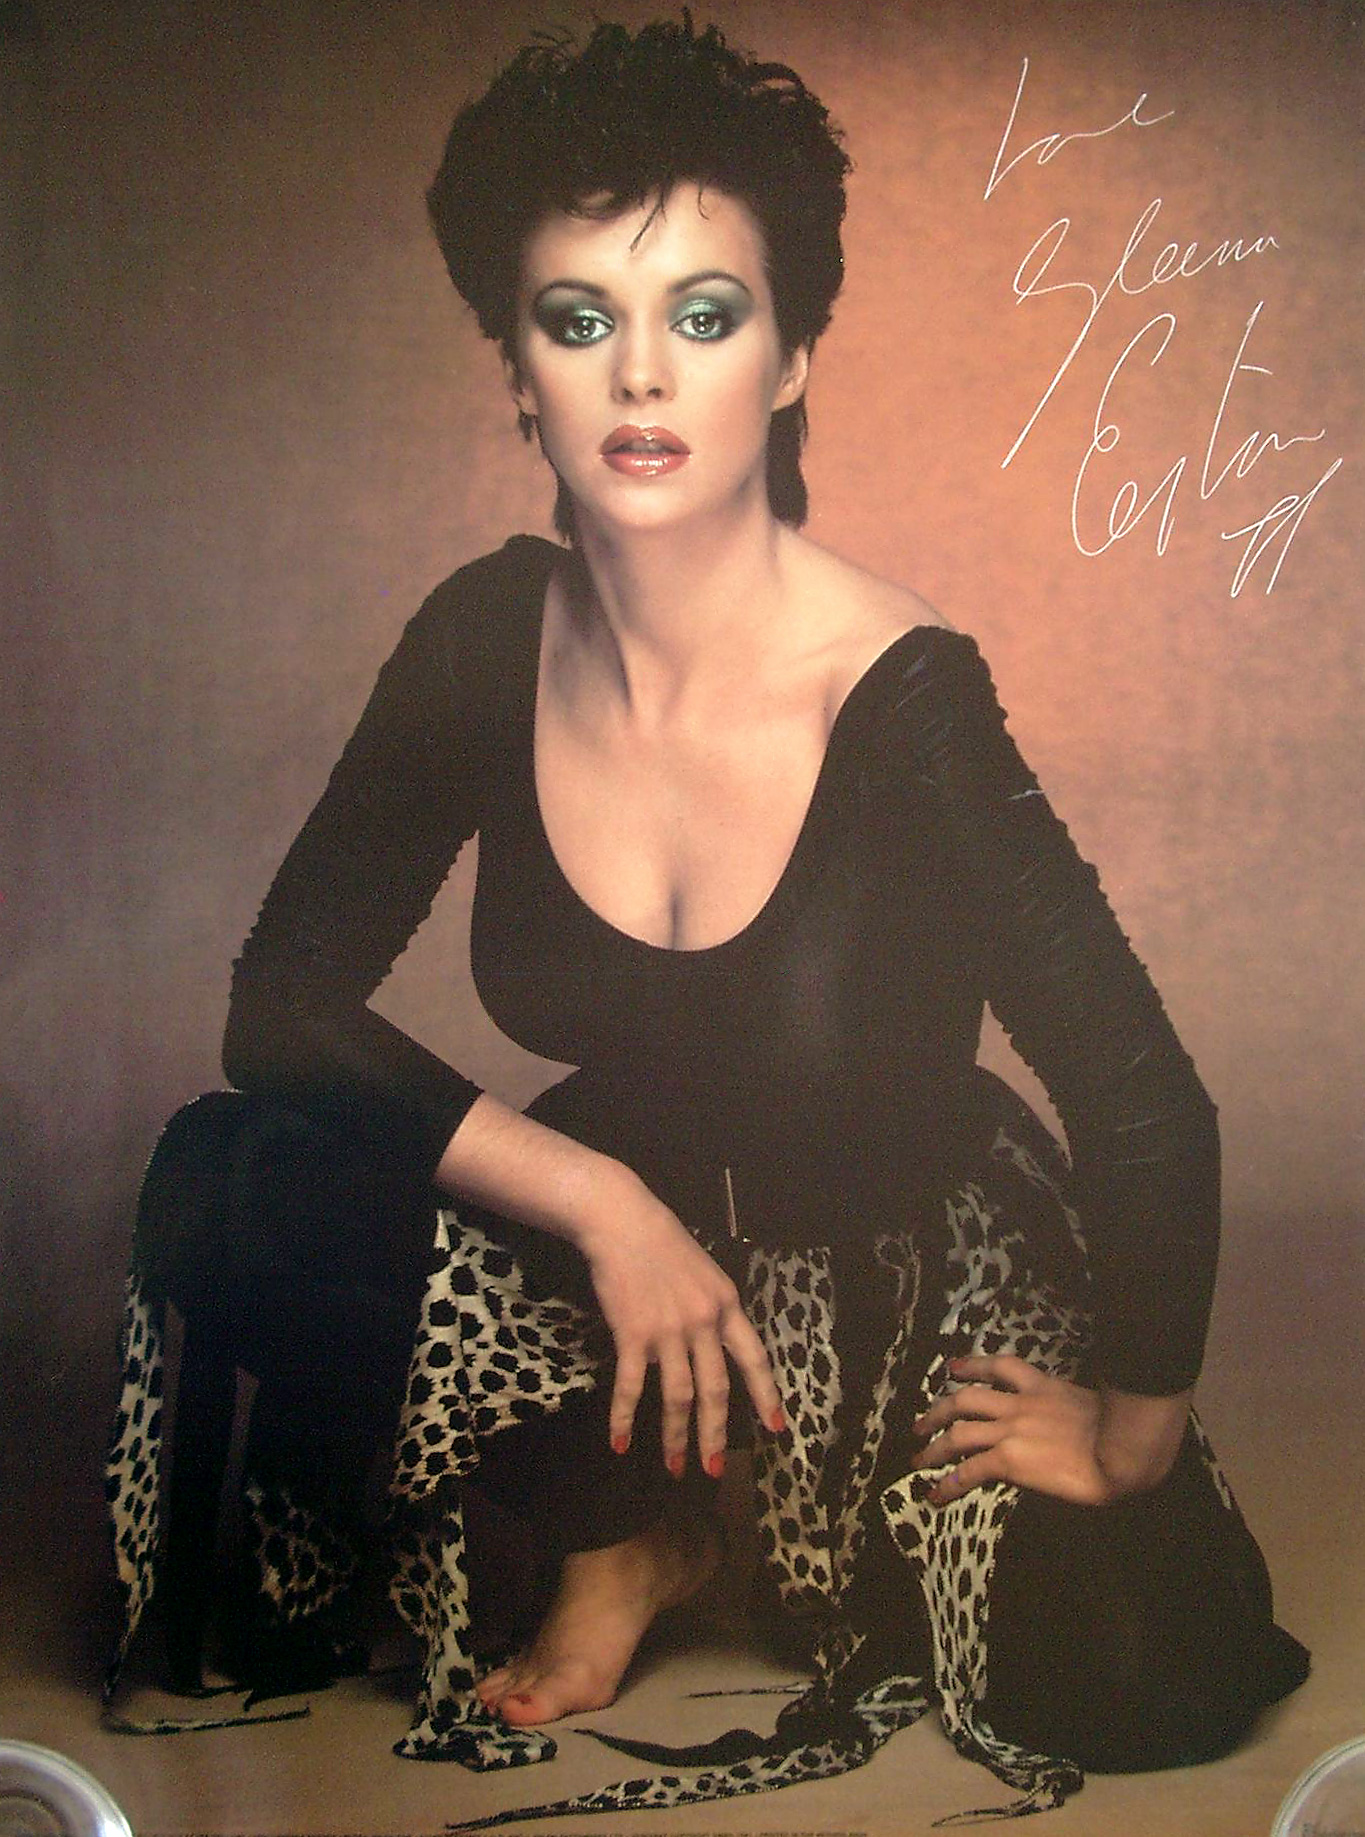 sheena easton - for your eyes only lyricssheena easton morning train, sheena easton for your eyes only, sheena easton morning train lyrics, sheena easton discogs, sheena easton do you, sheena easton - strut, sheena easton 2016, sheena easton mp3, sheena easton what comes naturally lyrics, sheena easton 1985, sheena easton lyrics, sheena easton - a private heaven, sheena easton 1988, sheena easton flac, sheena easton 101, sheena easton christmas, sheena easton - for your eyes only lyrics, sheena easton morning train mp3, sheena easton train, sheena easton sugar walls